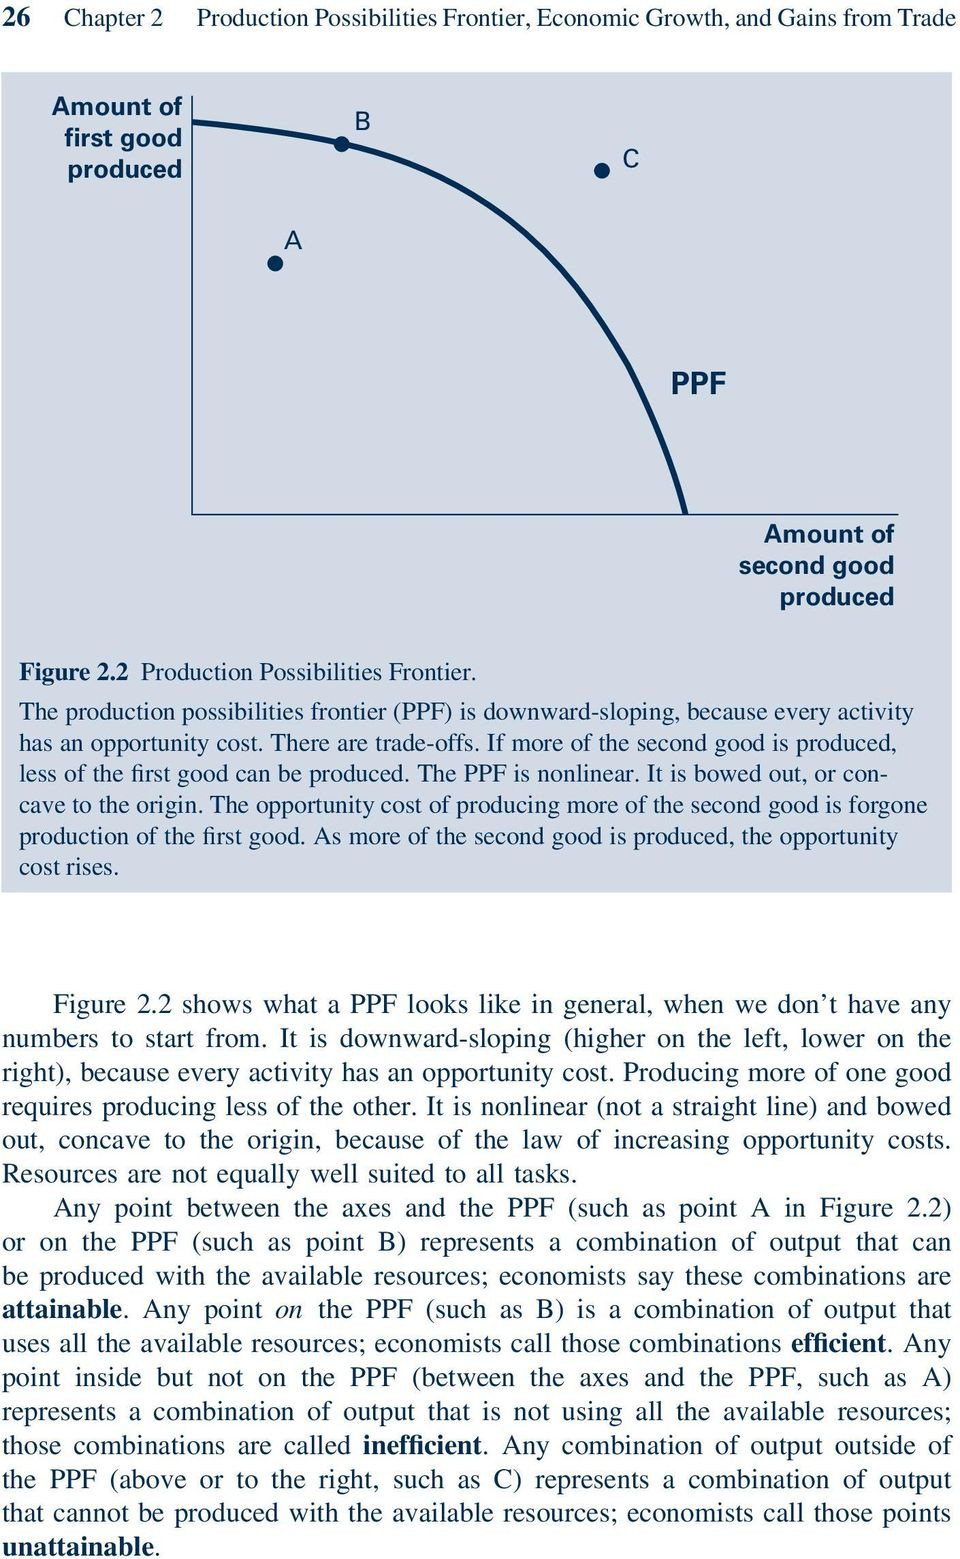 Production Possibilities Curve Worksheet Answers Production Possibilities Frontier Economic Growth and